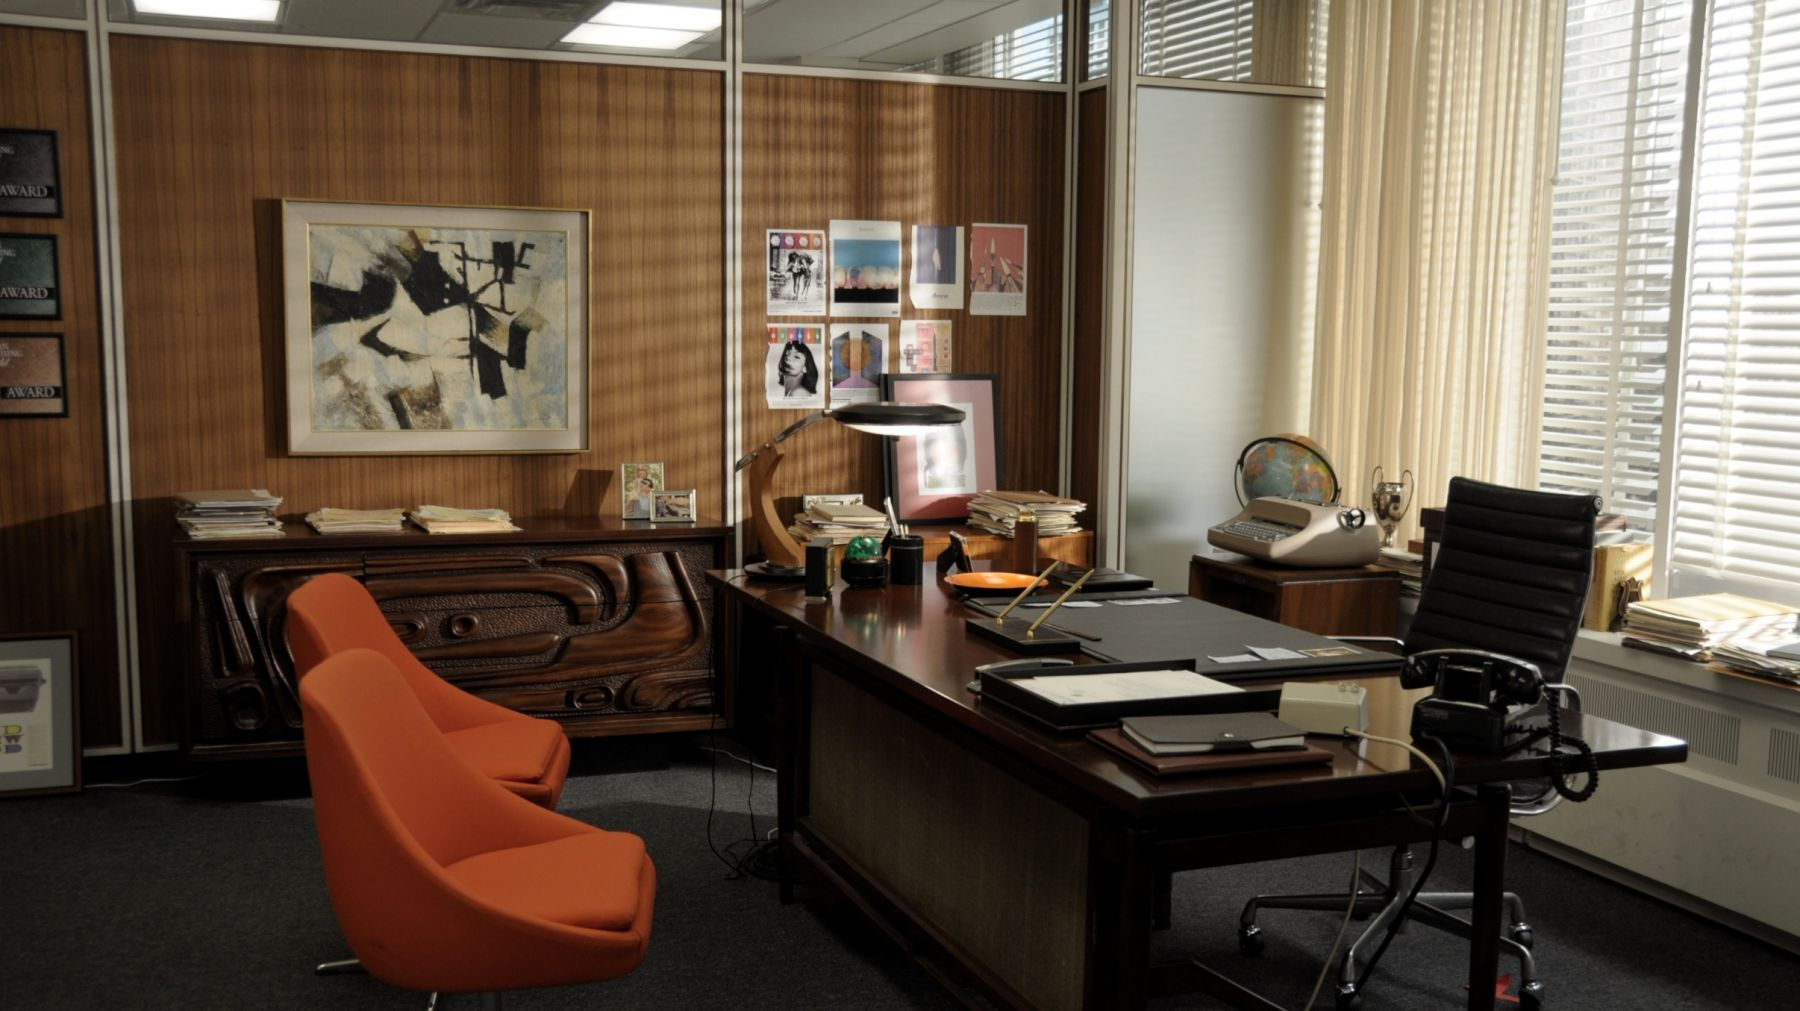 1mm4_scdp_don_draper_office.jpg